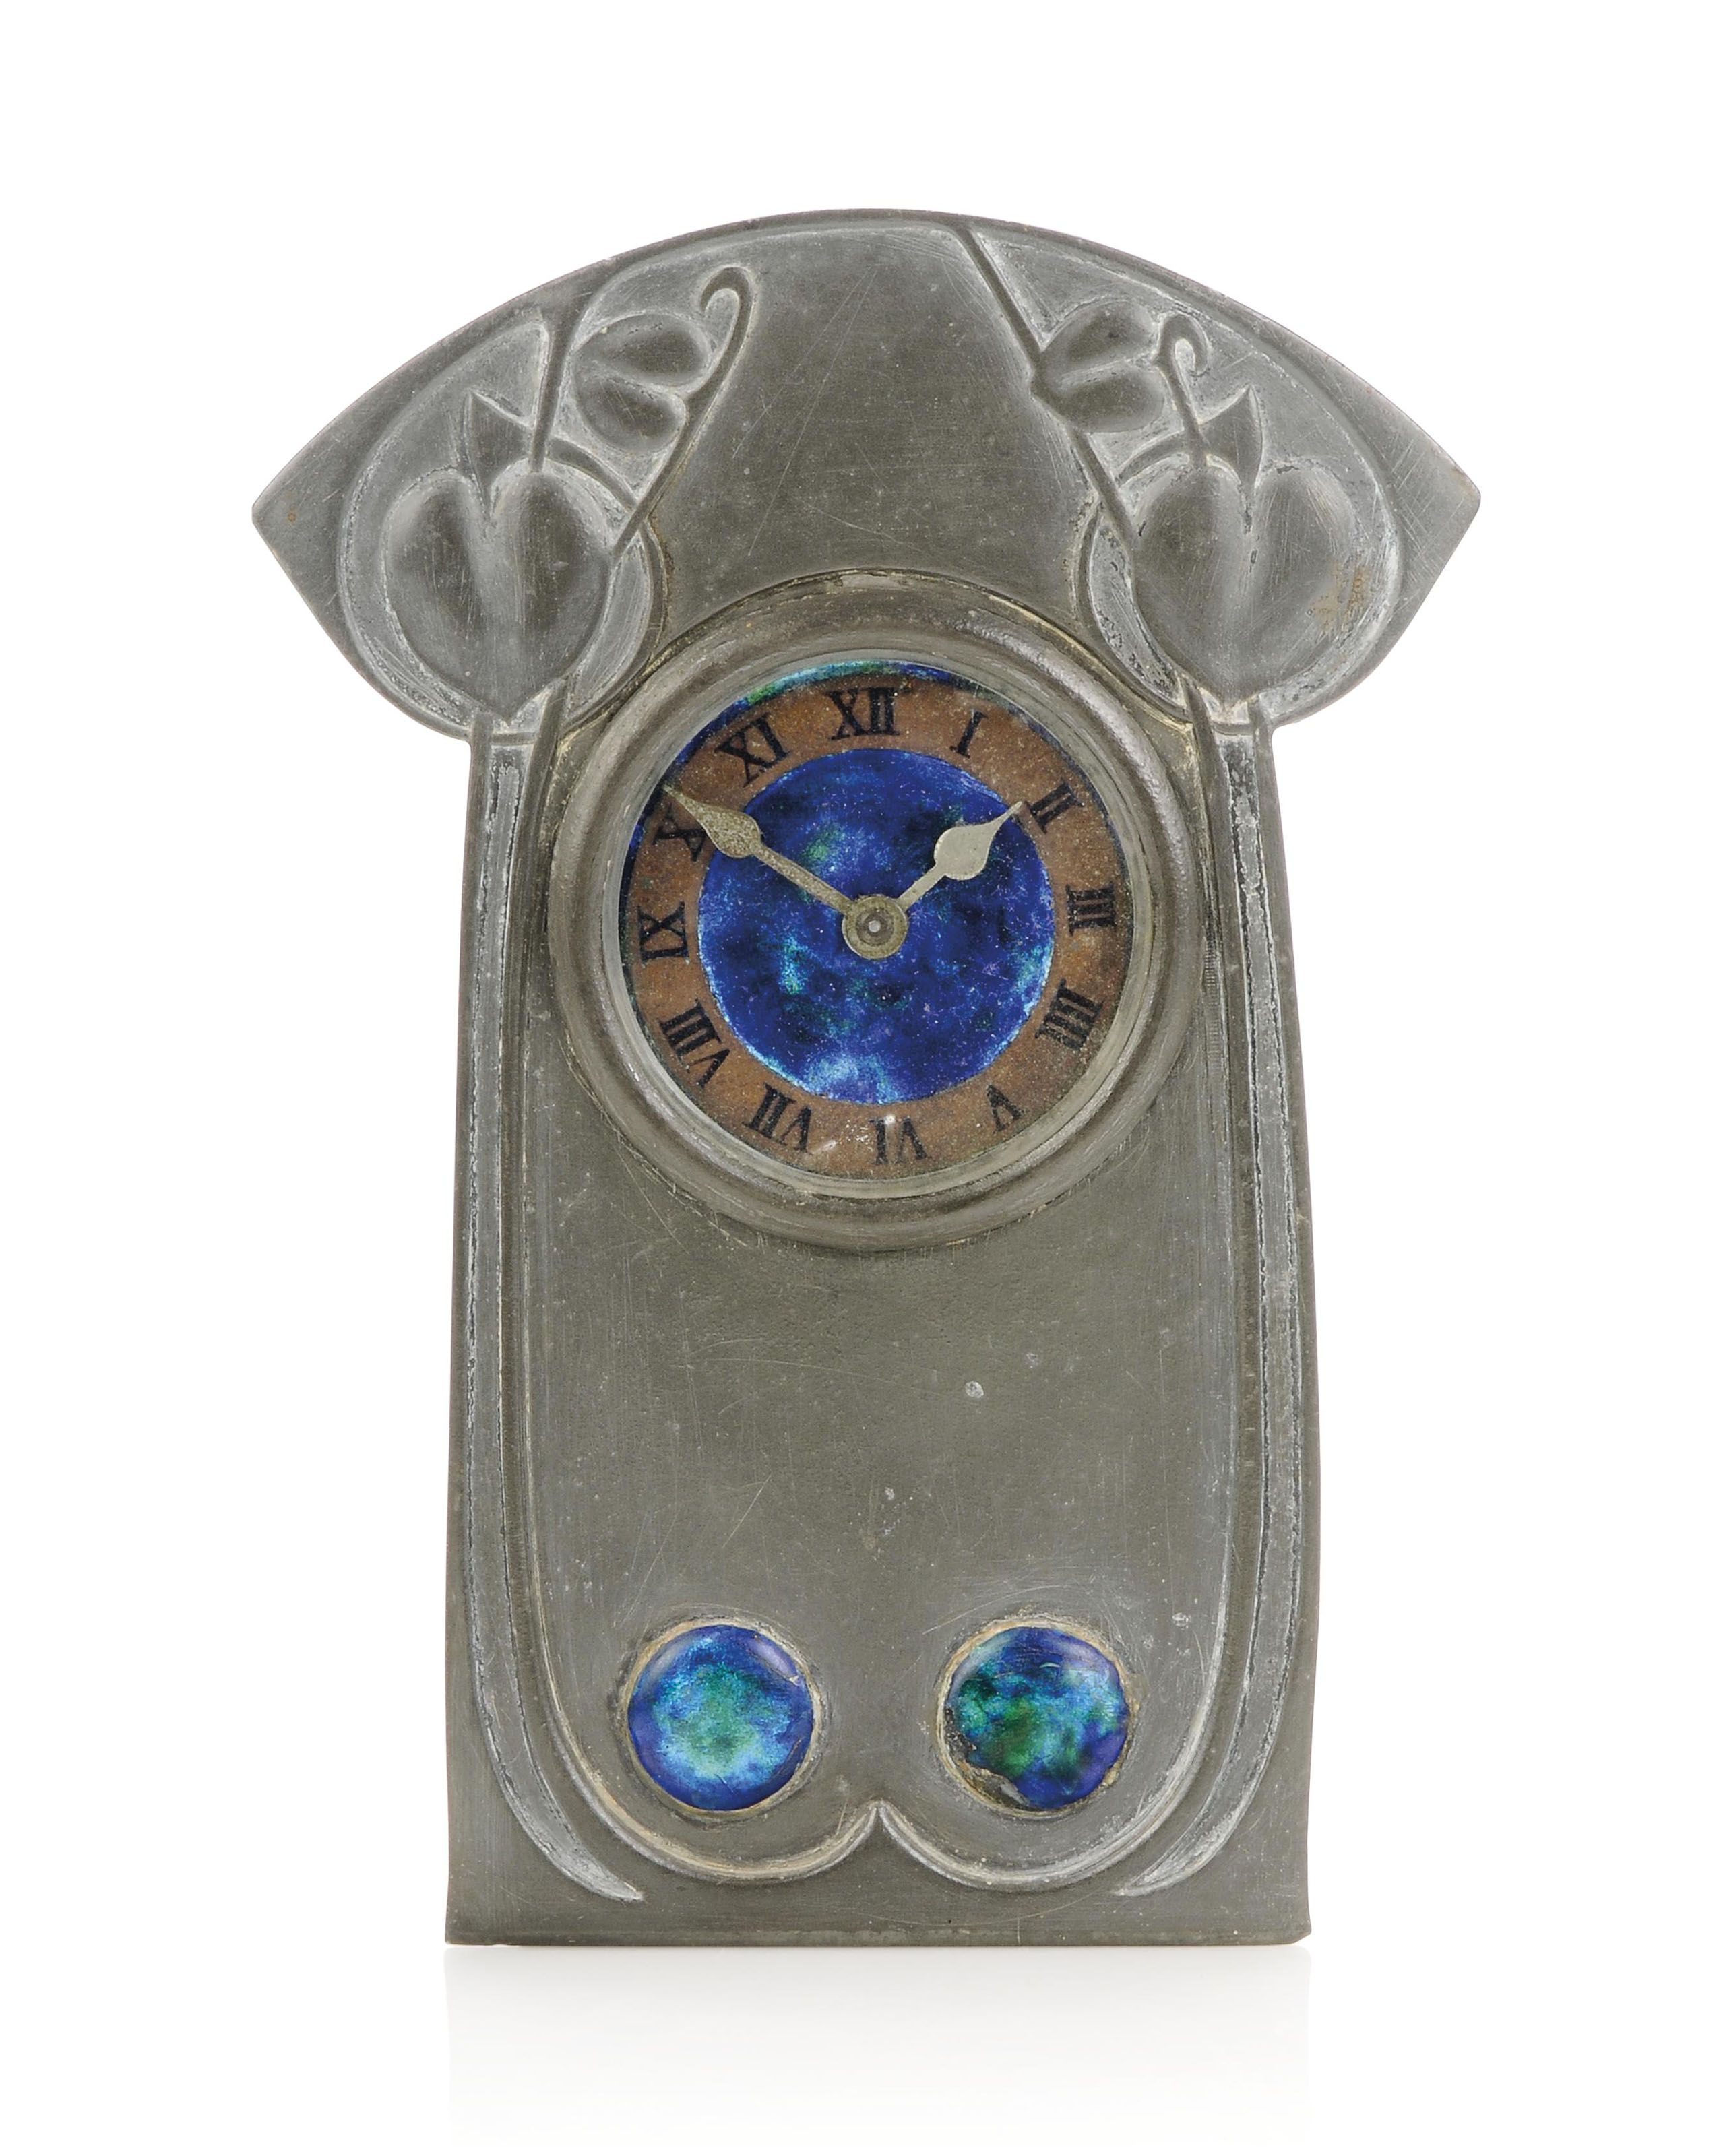 AN ARCHIBALD KNOX FOR LIBERTY & CO PEWTER AND ENAMEL TIMEPIECE